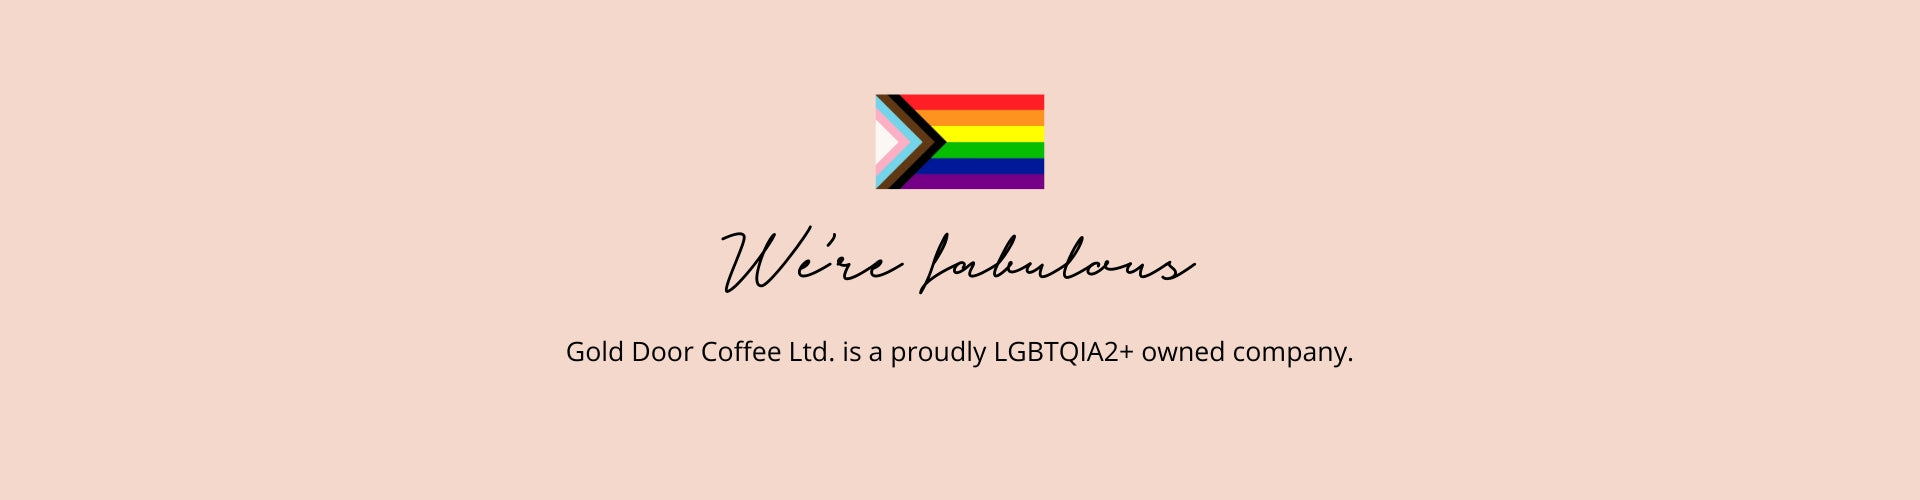 Gold Door Coffee Ltd. Zero-waste Canadian coffee subscription is a proudly LGBTQIA2+ owned company